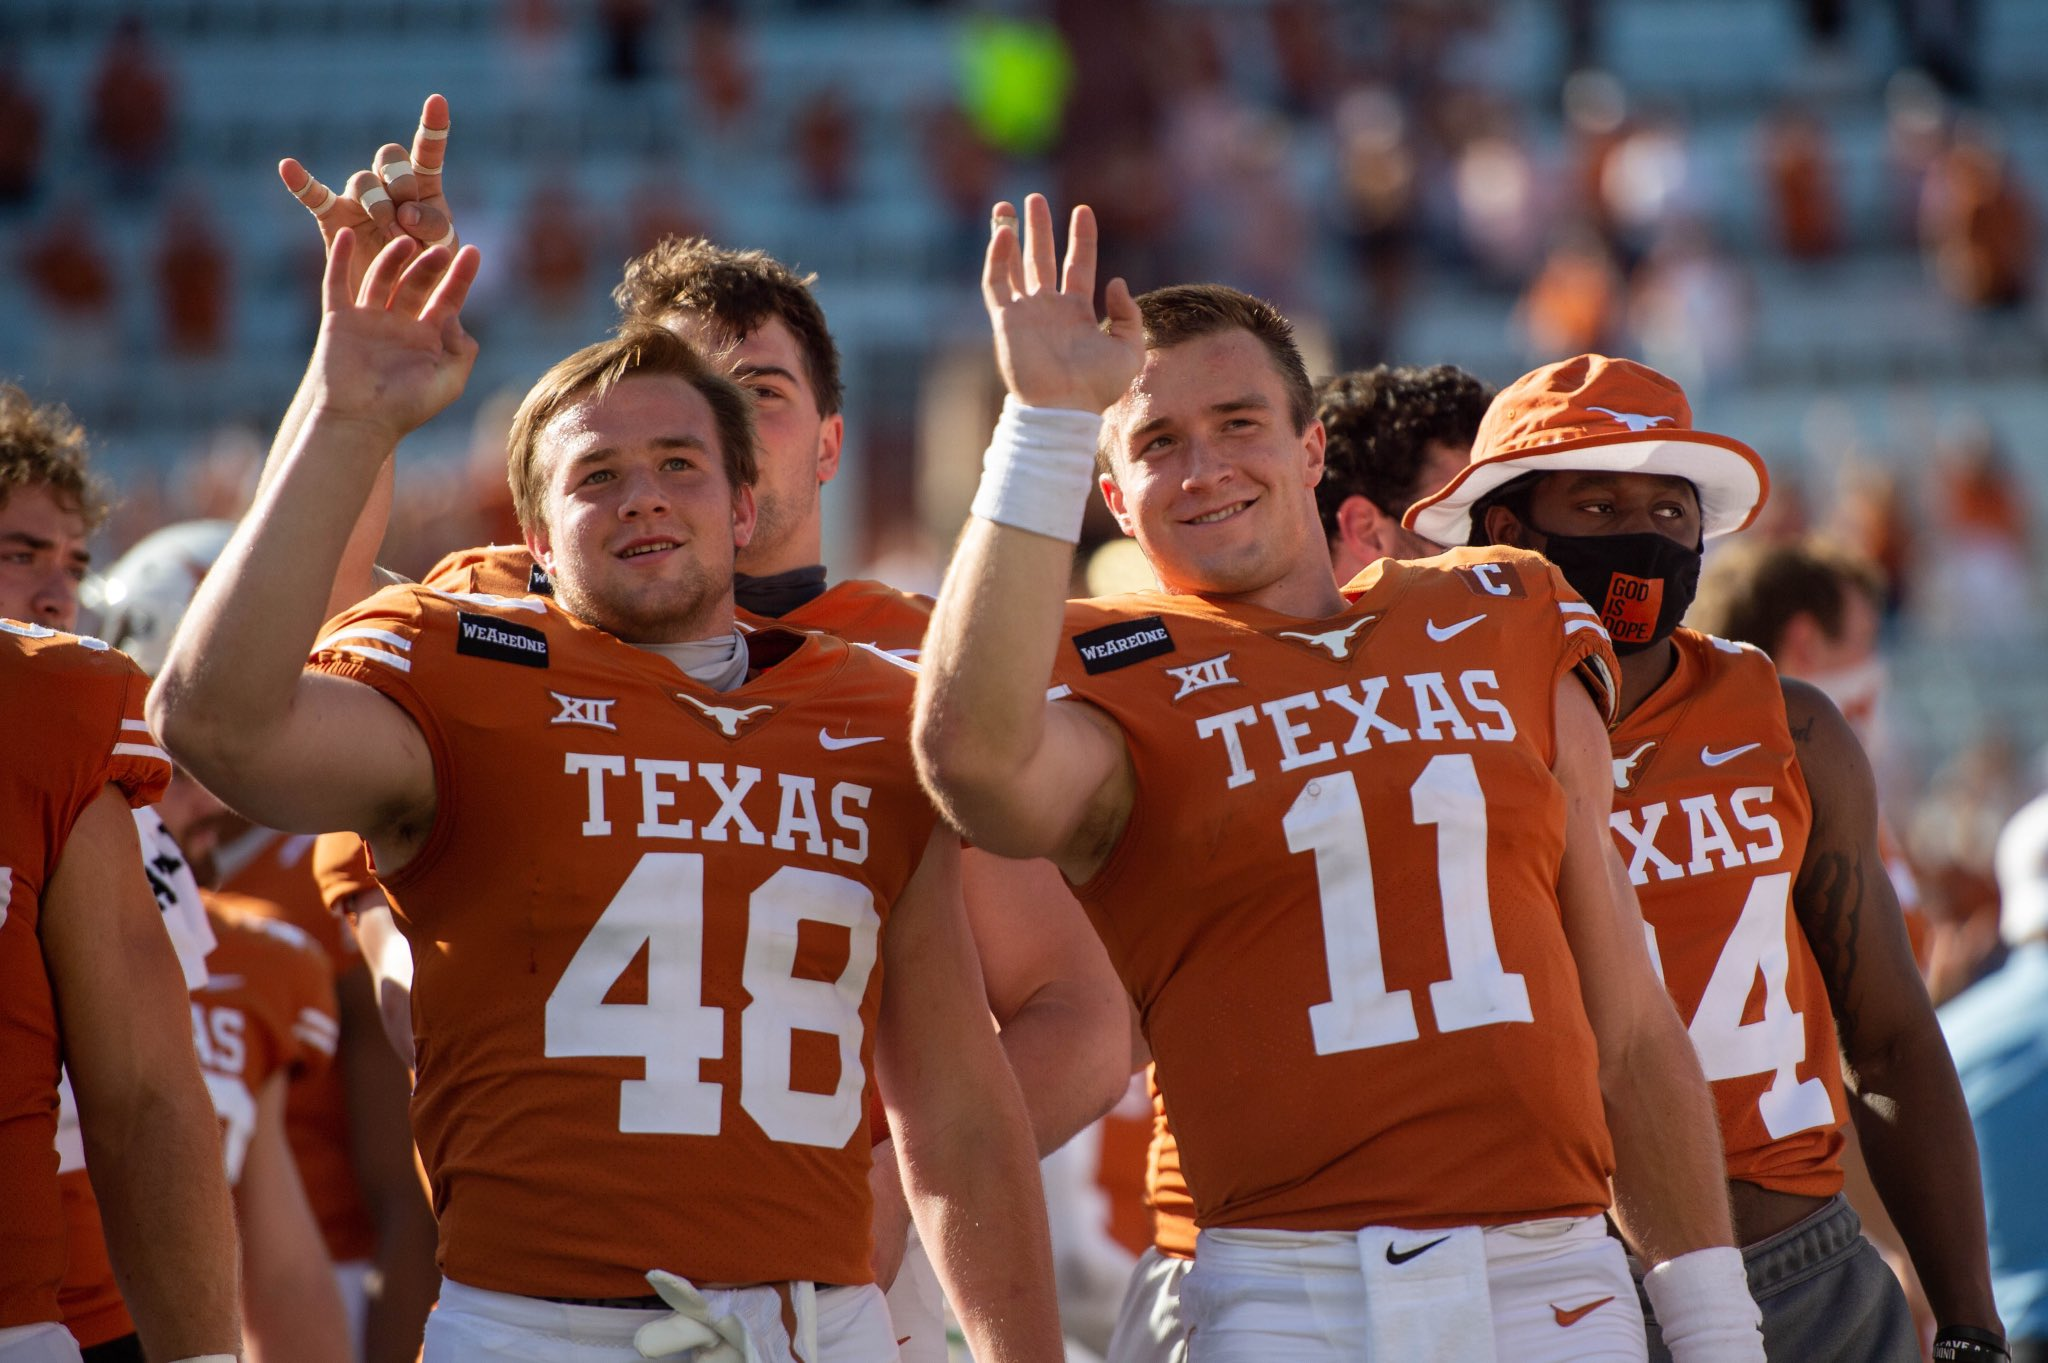 Texas Longhorns Linebacker Jake Ehlinger, Younger Brother of School's Former QB Sam Ehlinger, Found Dead Off Campus